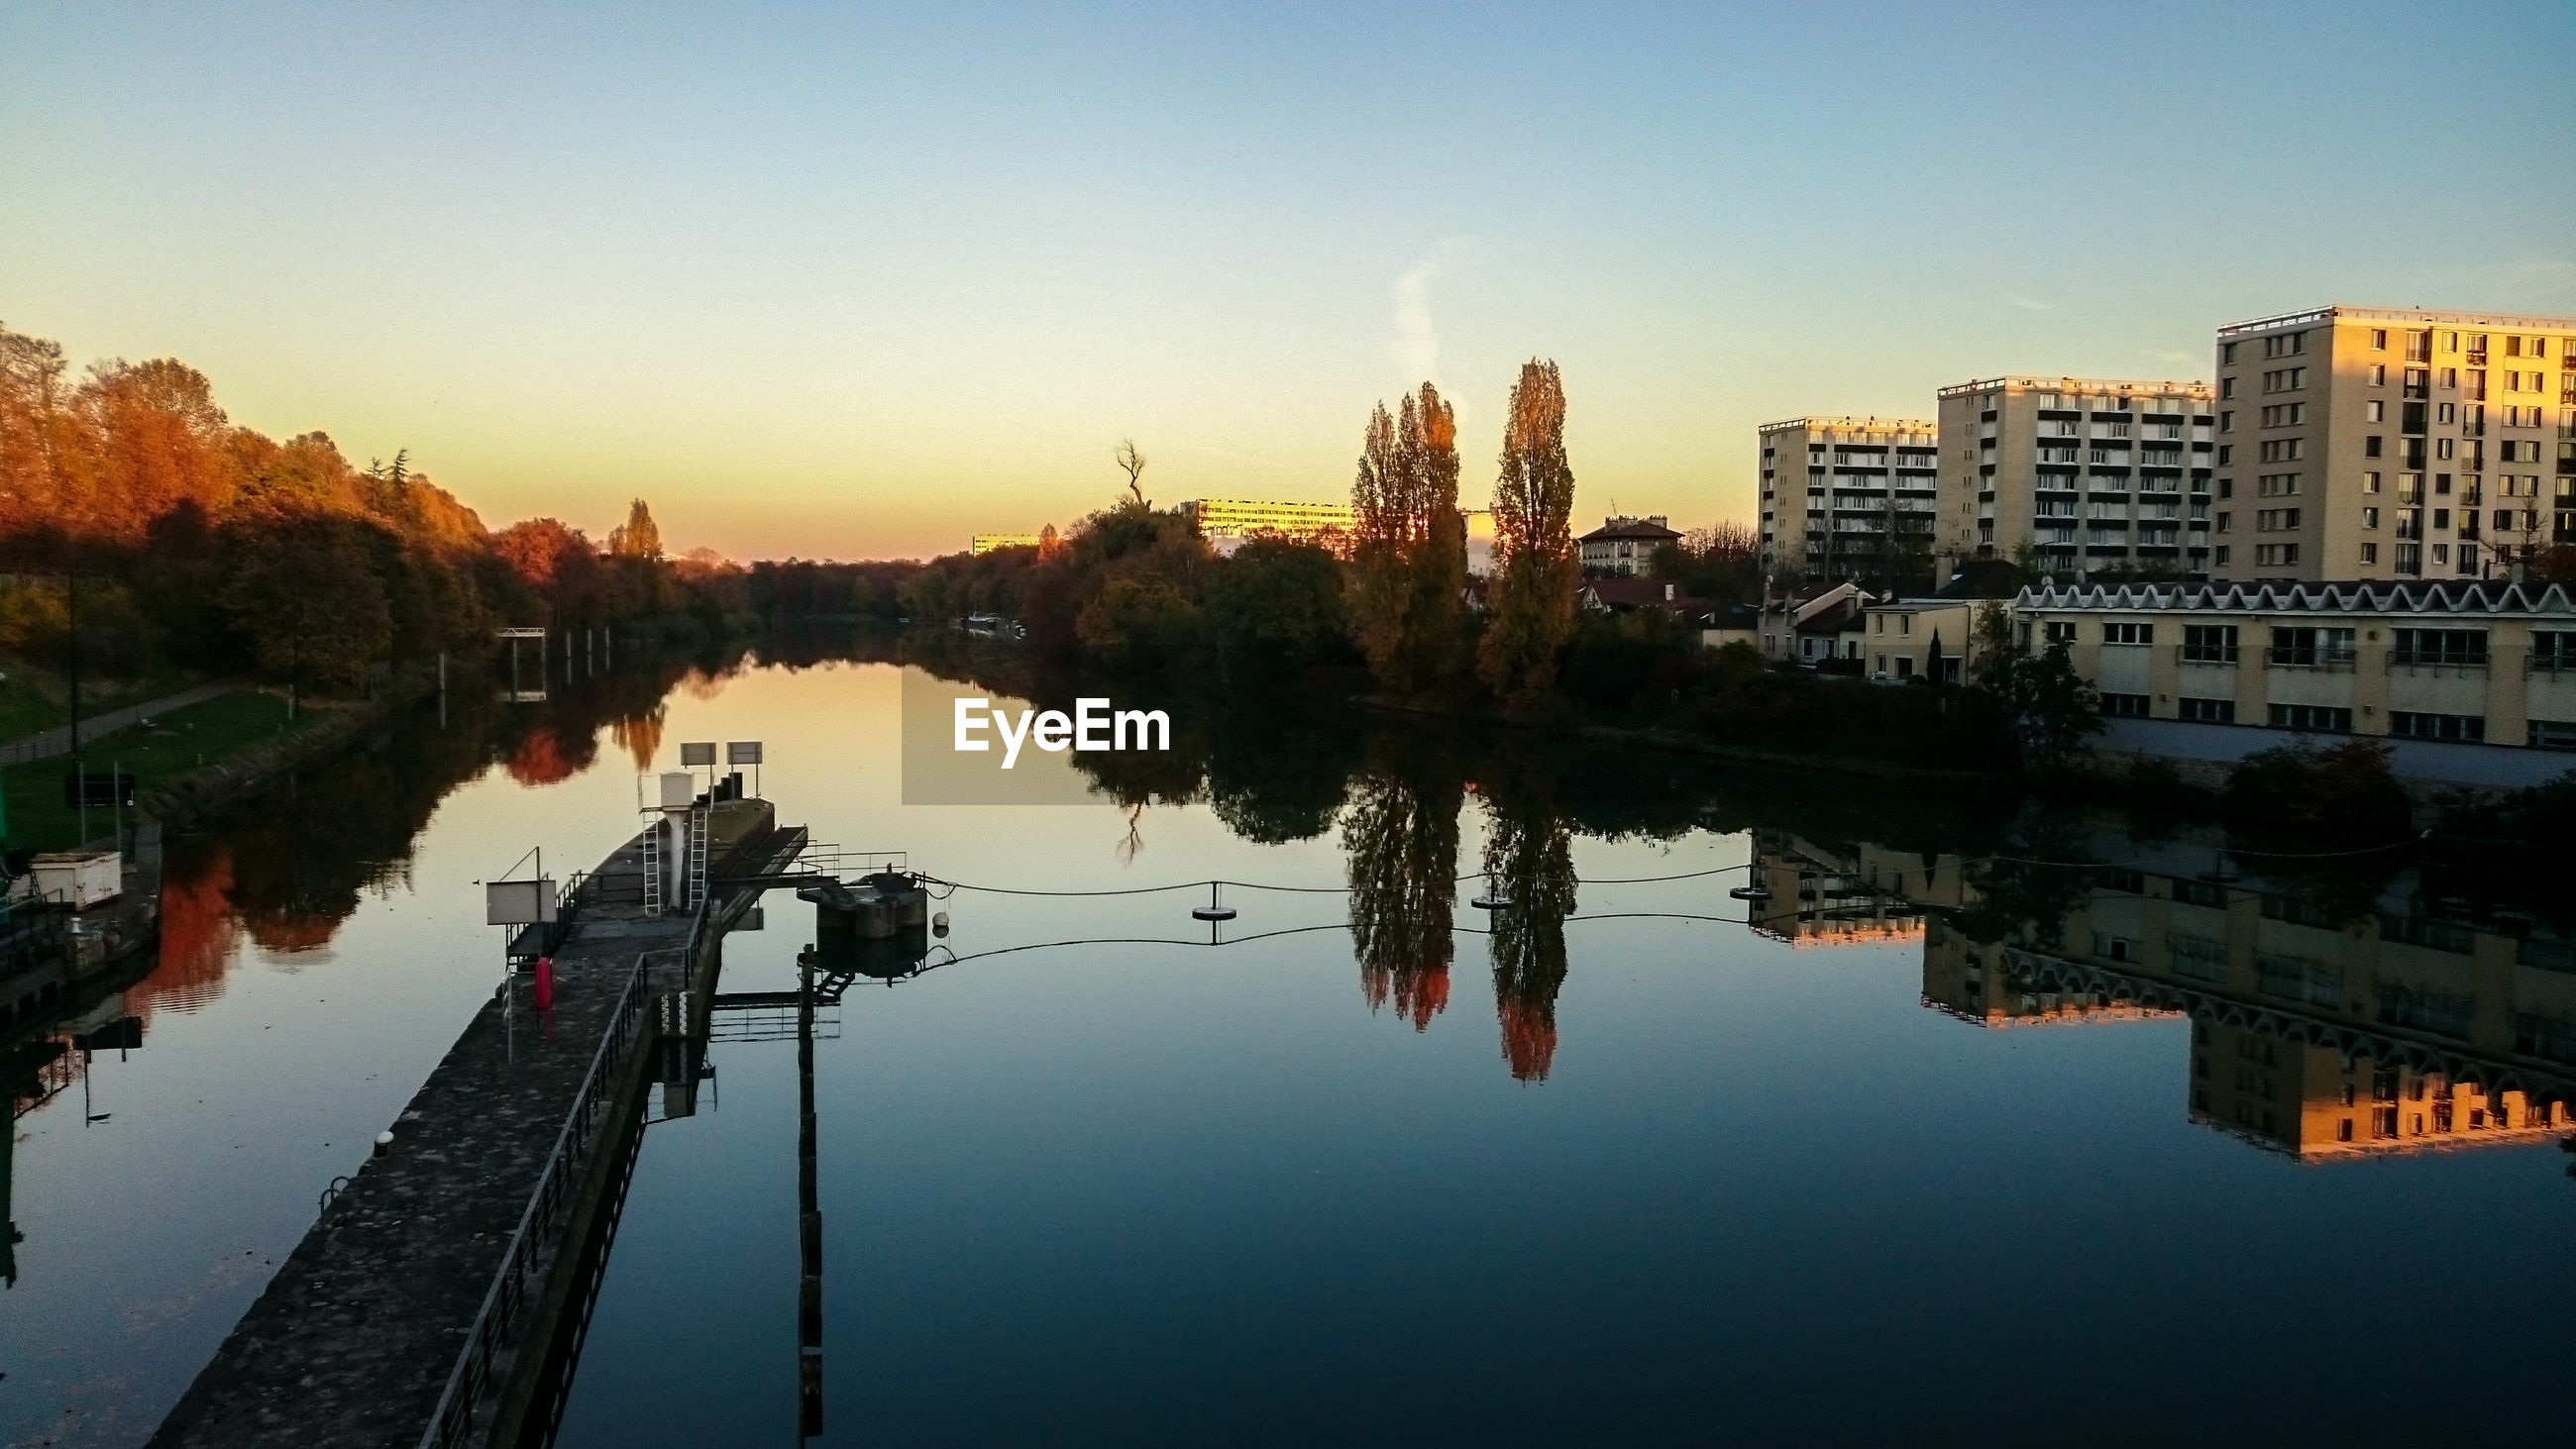 River by city against sky during sunset